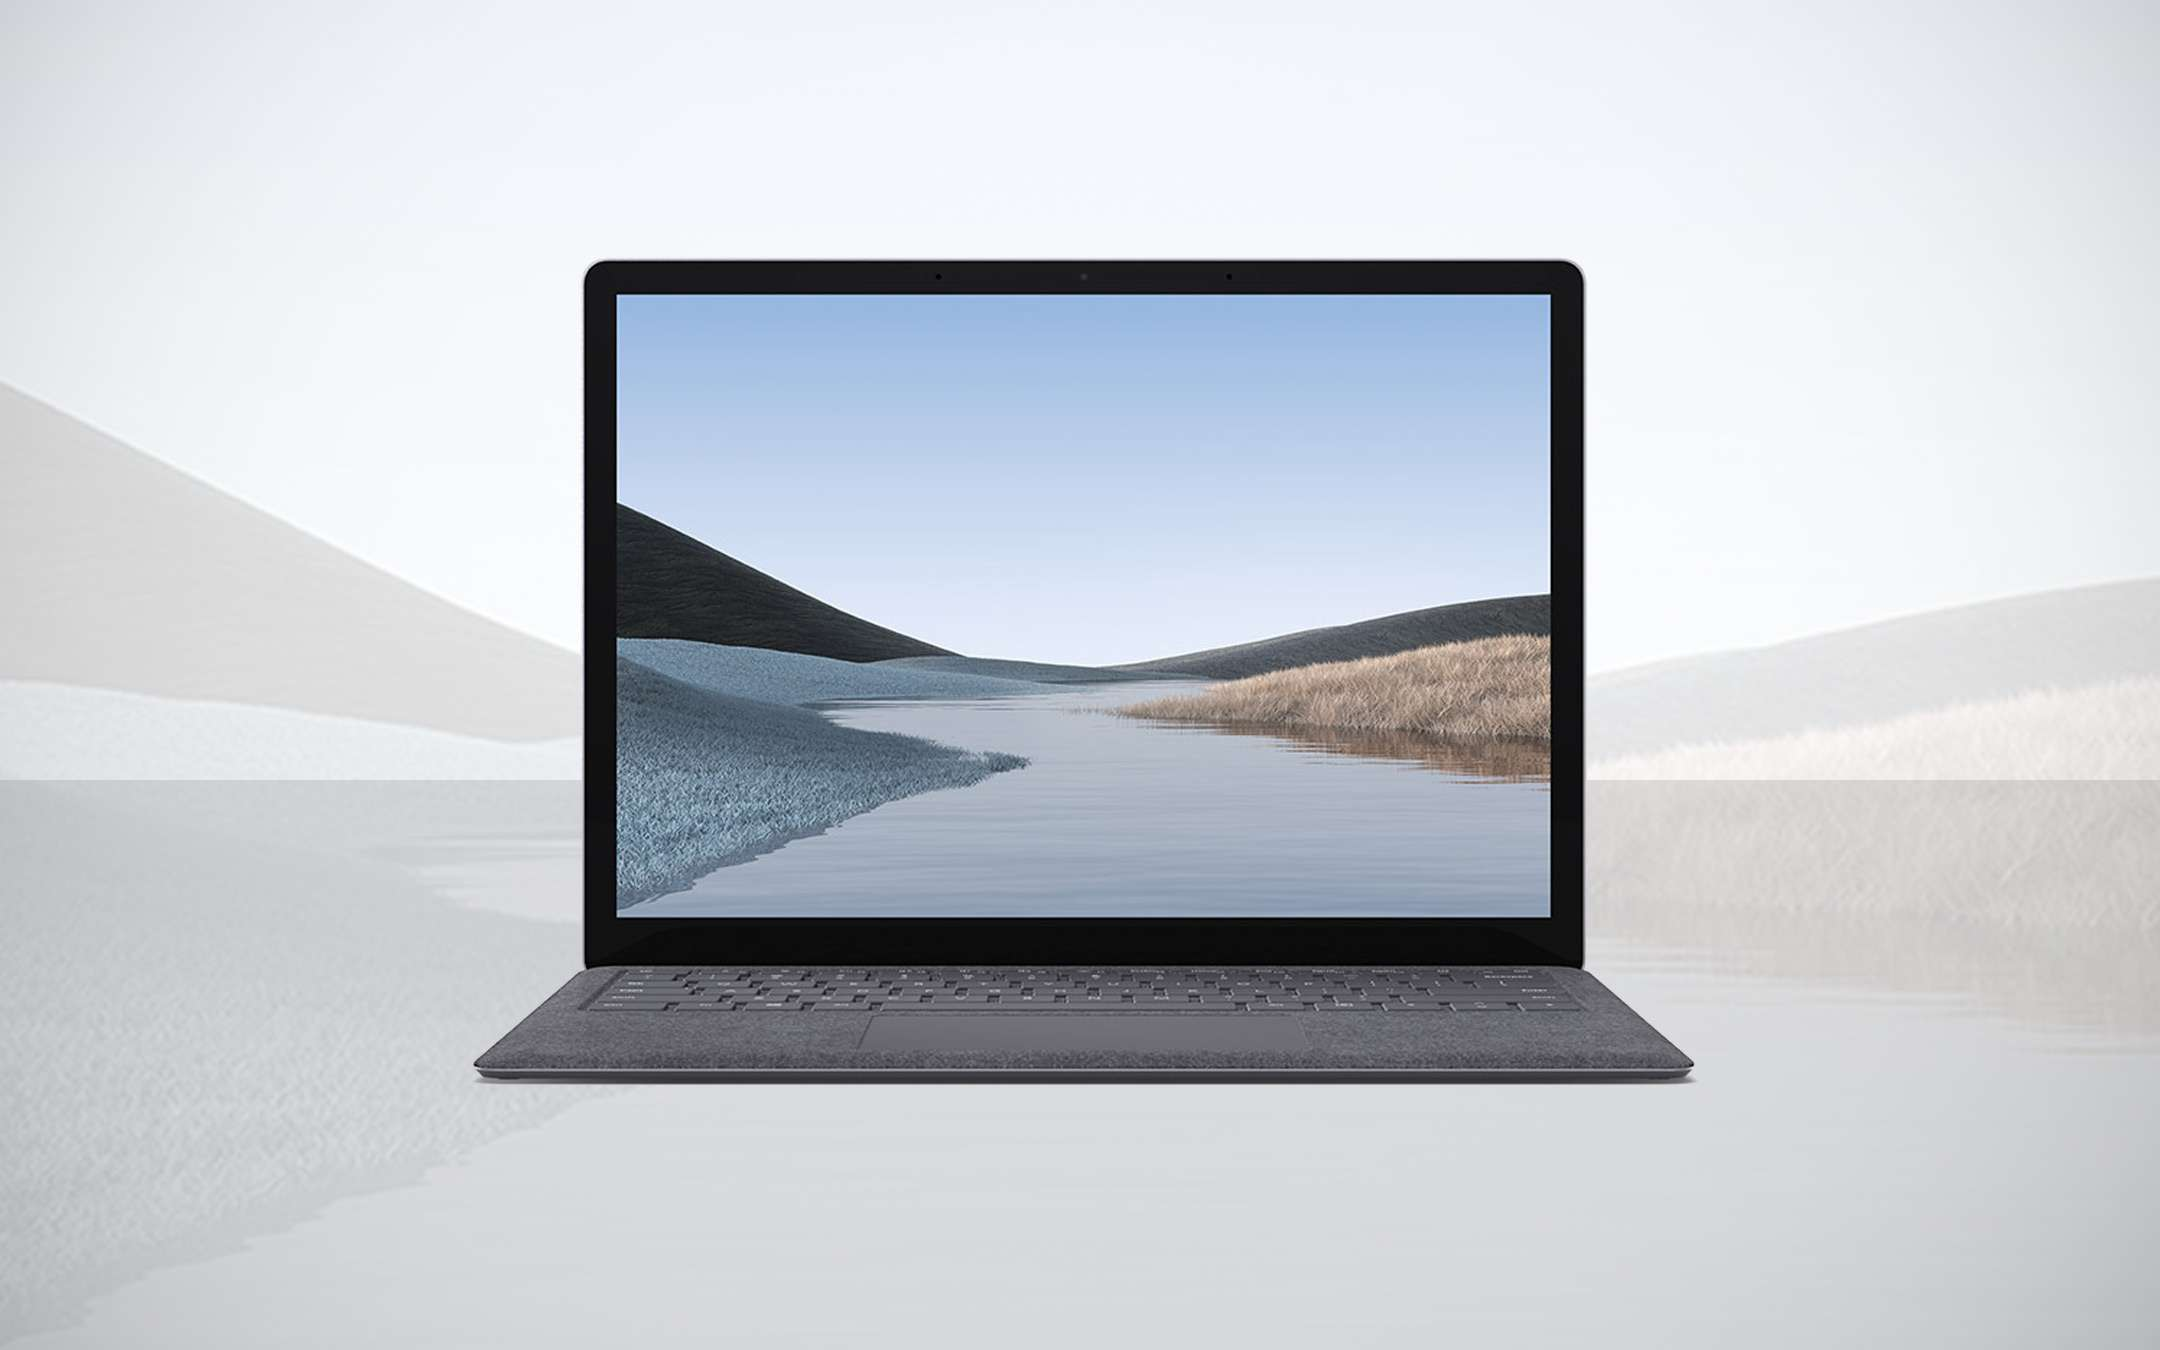 Microsoft's Surface Laptop 3 on offer at € 899